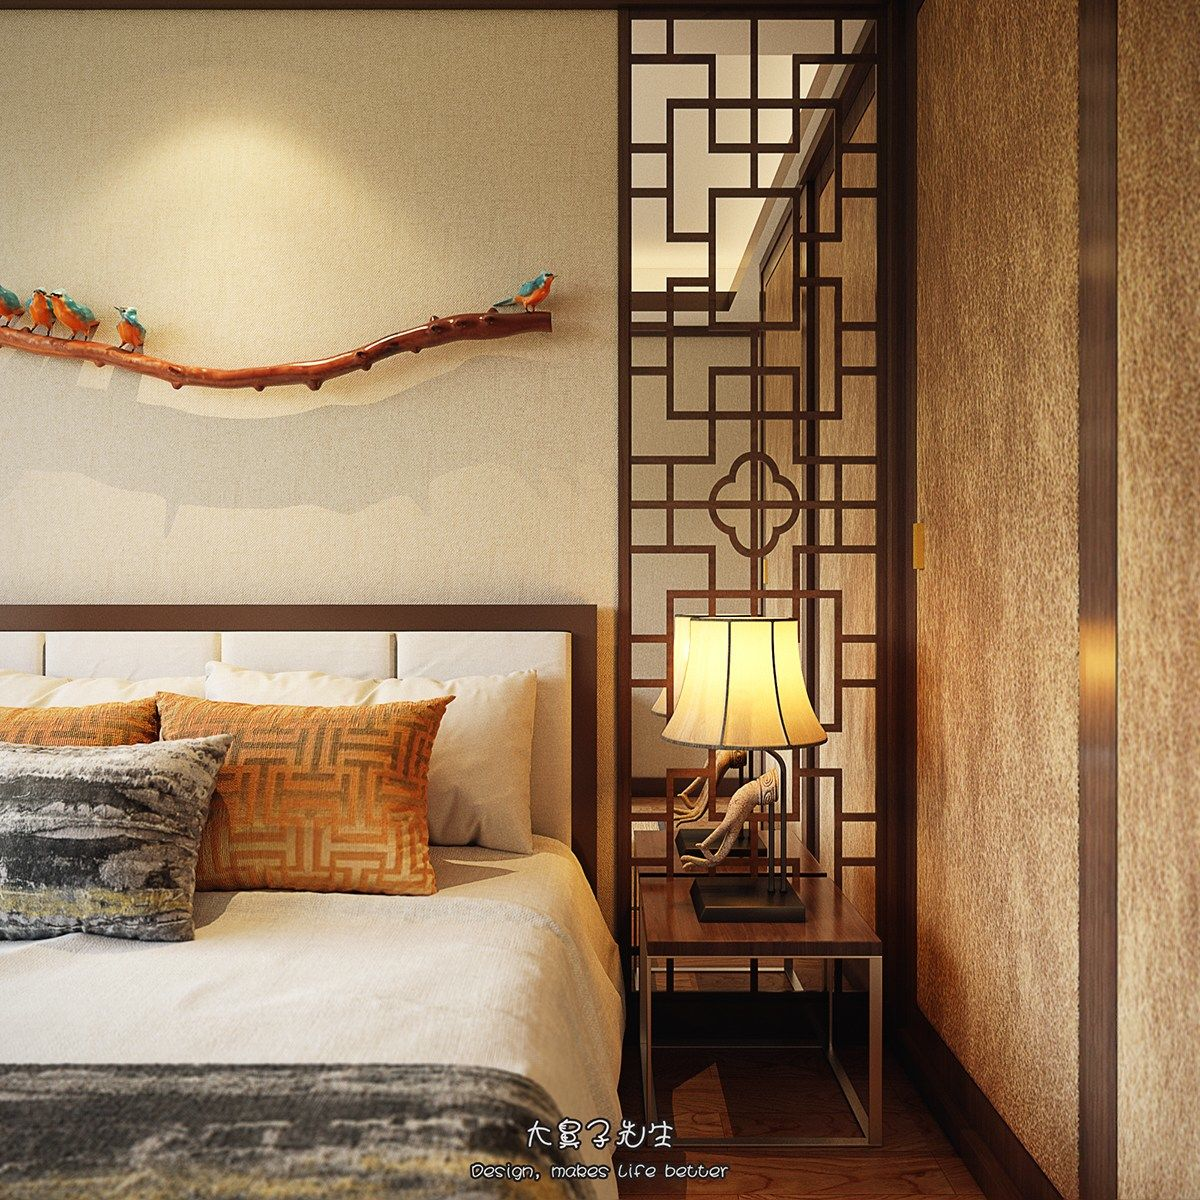 Traditional Interior Design By Ownby: Two Modern Interiors Inspired By Traditional Chinese Decor